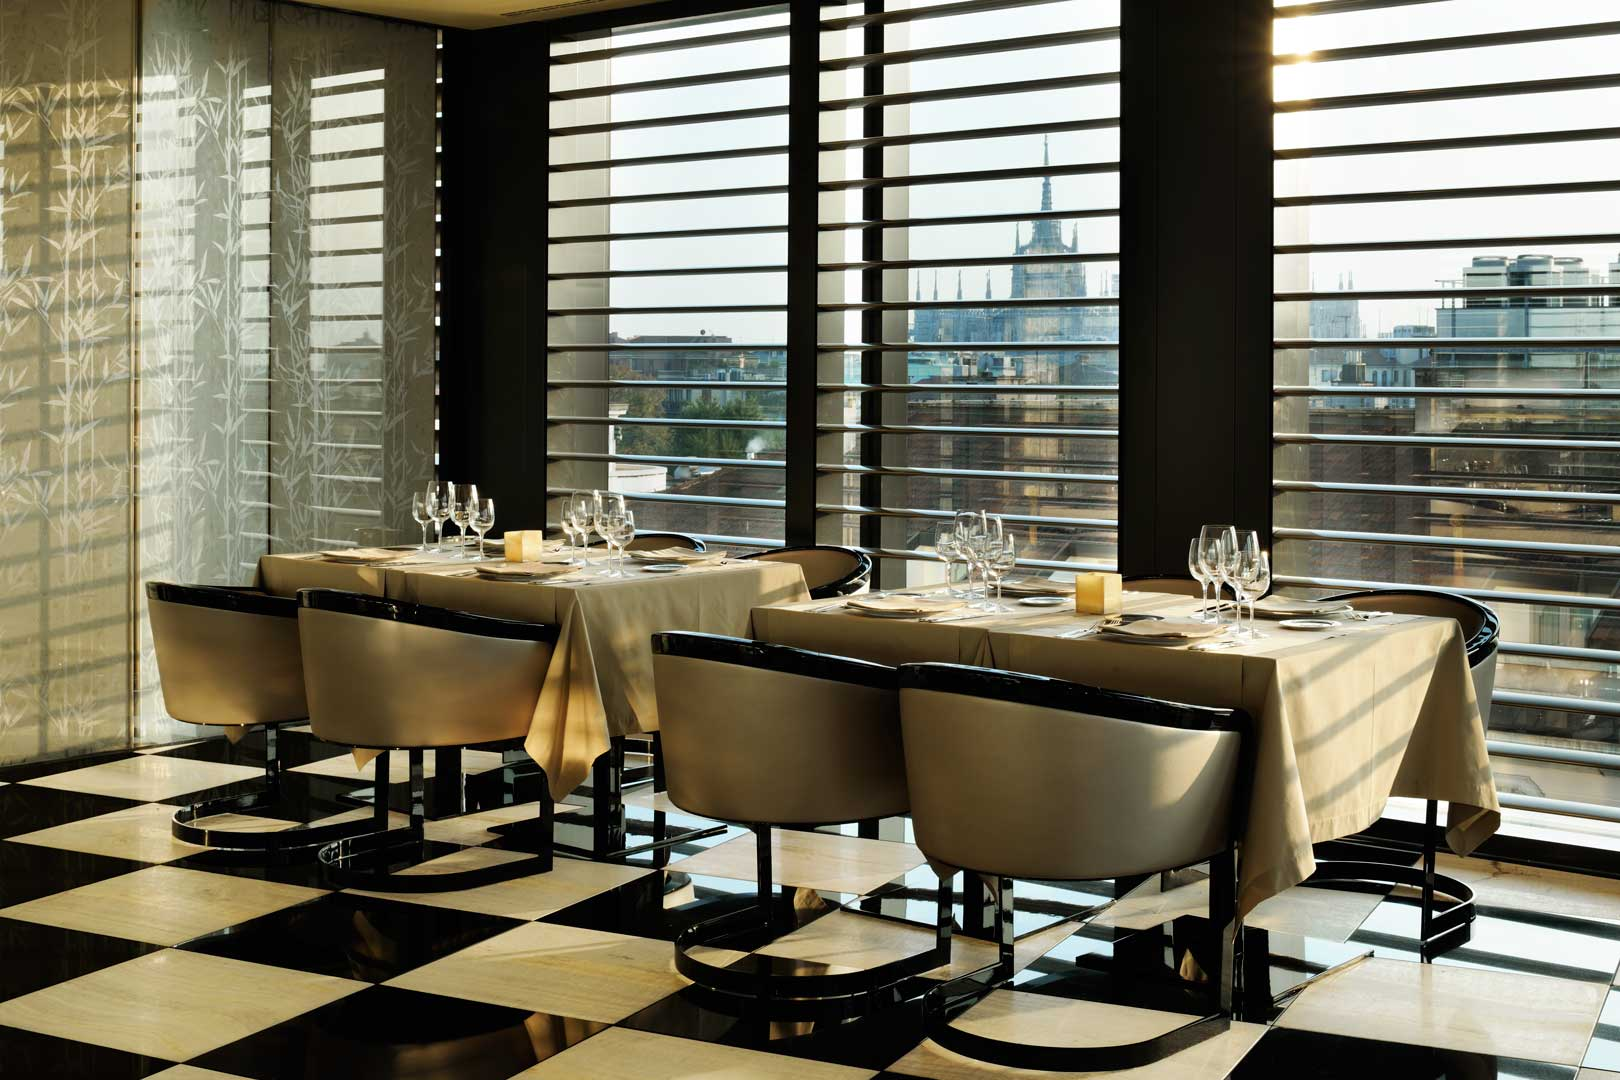 Armani ristorante flawless milano the lifestyle guide for Ristoranti design